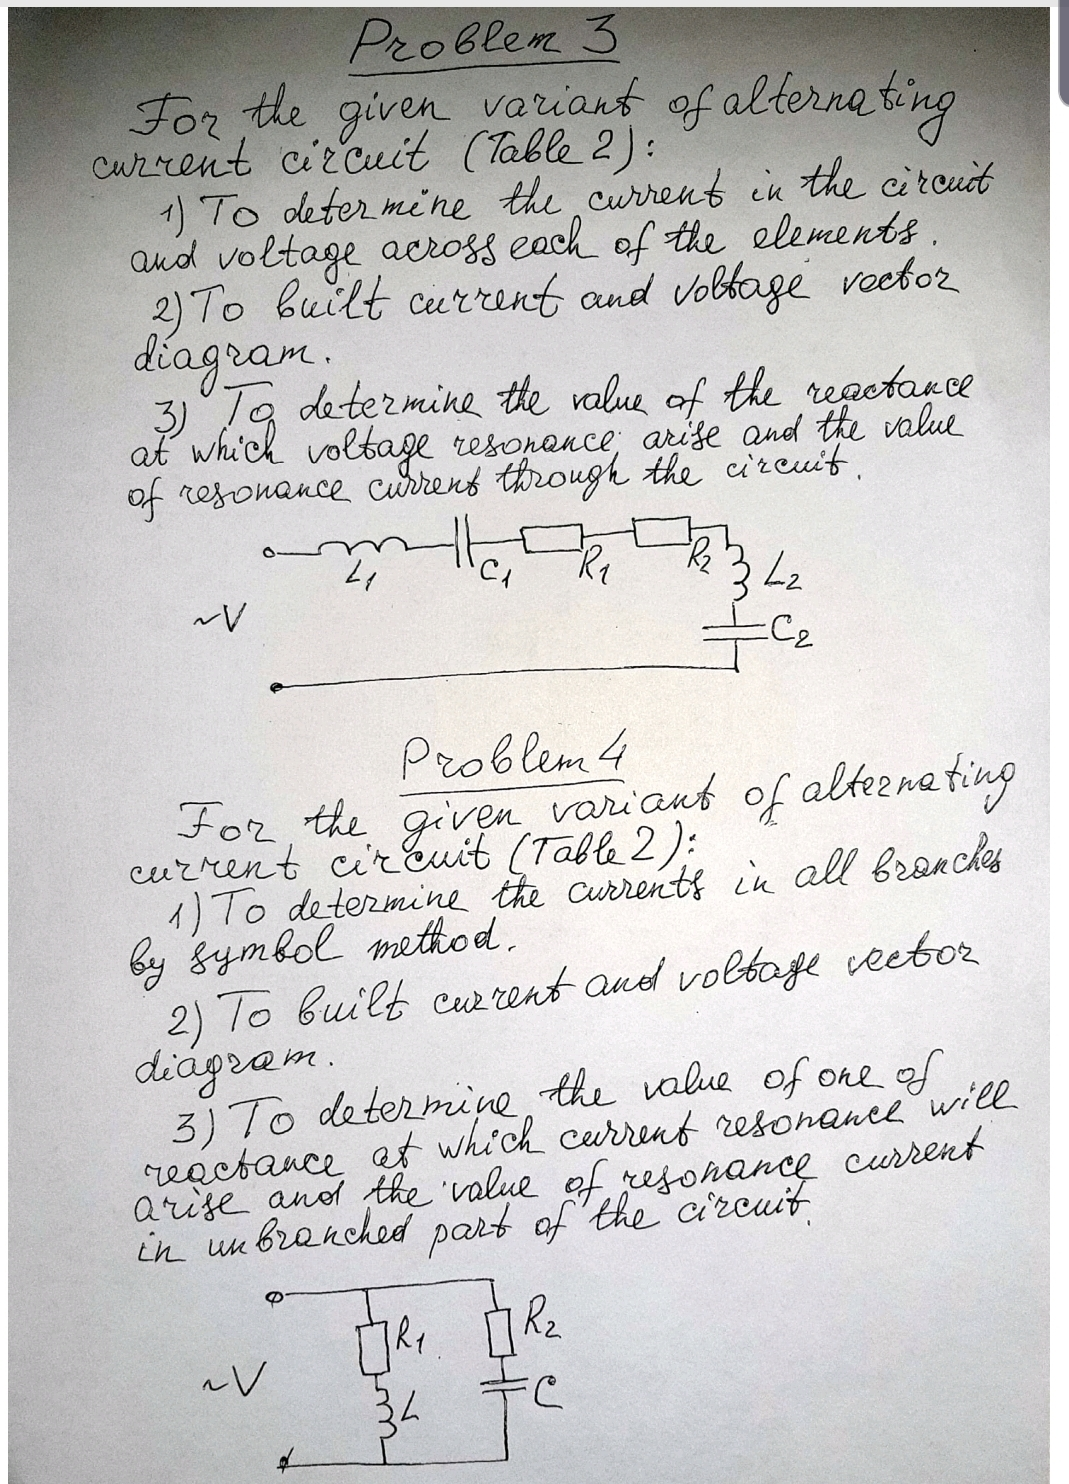 Problem 3 veriant of alternating For the given Current circuit (Table 2): 1) To deter mine the current in the circuit aud voltage across each of the elements. 2) To built current and vobbage veetor diagram. Ta determine the value of the regetarce 3) at whi'ch voltage resonance; arise and the value of resonance currens through the cireuit, 342 C2 Problem 4 For, the given variant of alteena ting current cir Euit (Table 2): 1) To determine the currenti in all branches by gymbol method. 2) To built cw rent and voltage veebor diágram. 3) To determine, the value of one of reactance at which current resonance will arise anod the 'value of rejonance curent in un branched part of 'the circuit 34